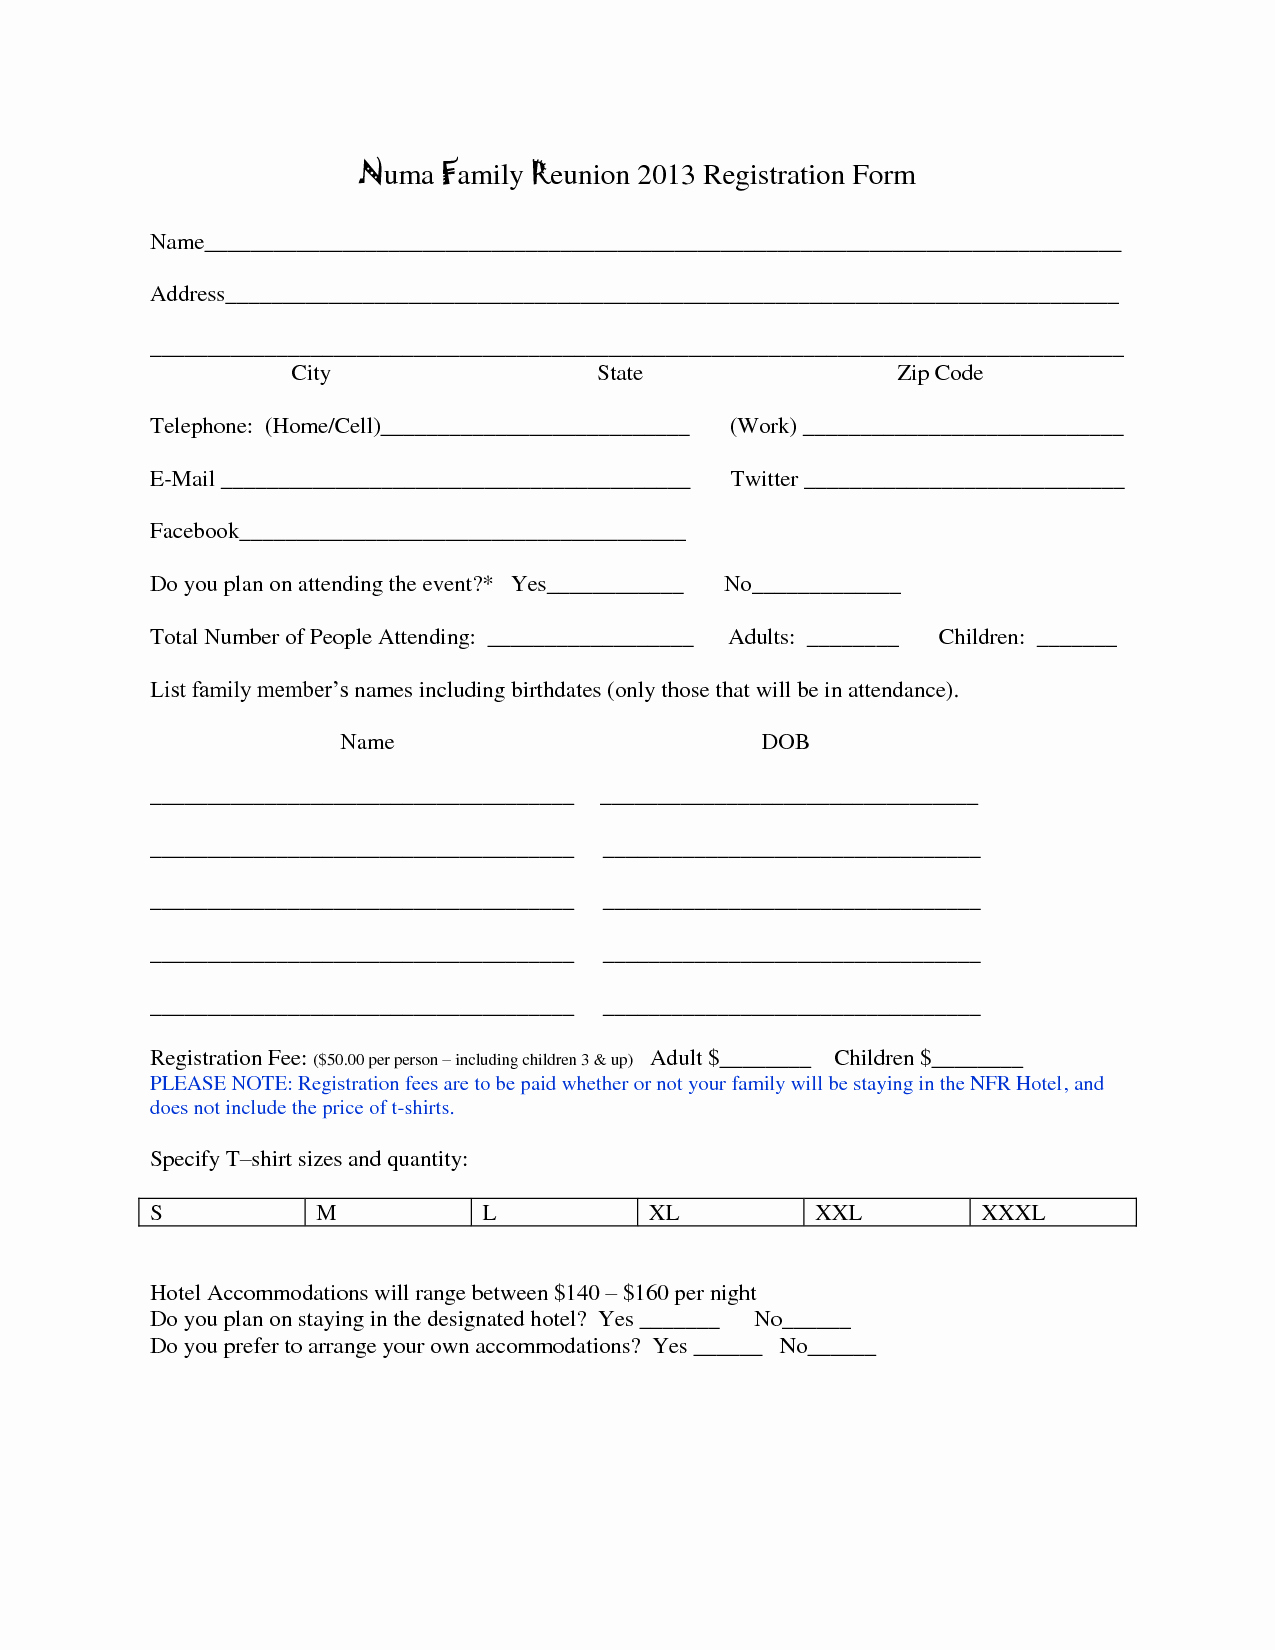 Registration form Template Word Fresh Family Reunion Registration form Template